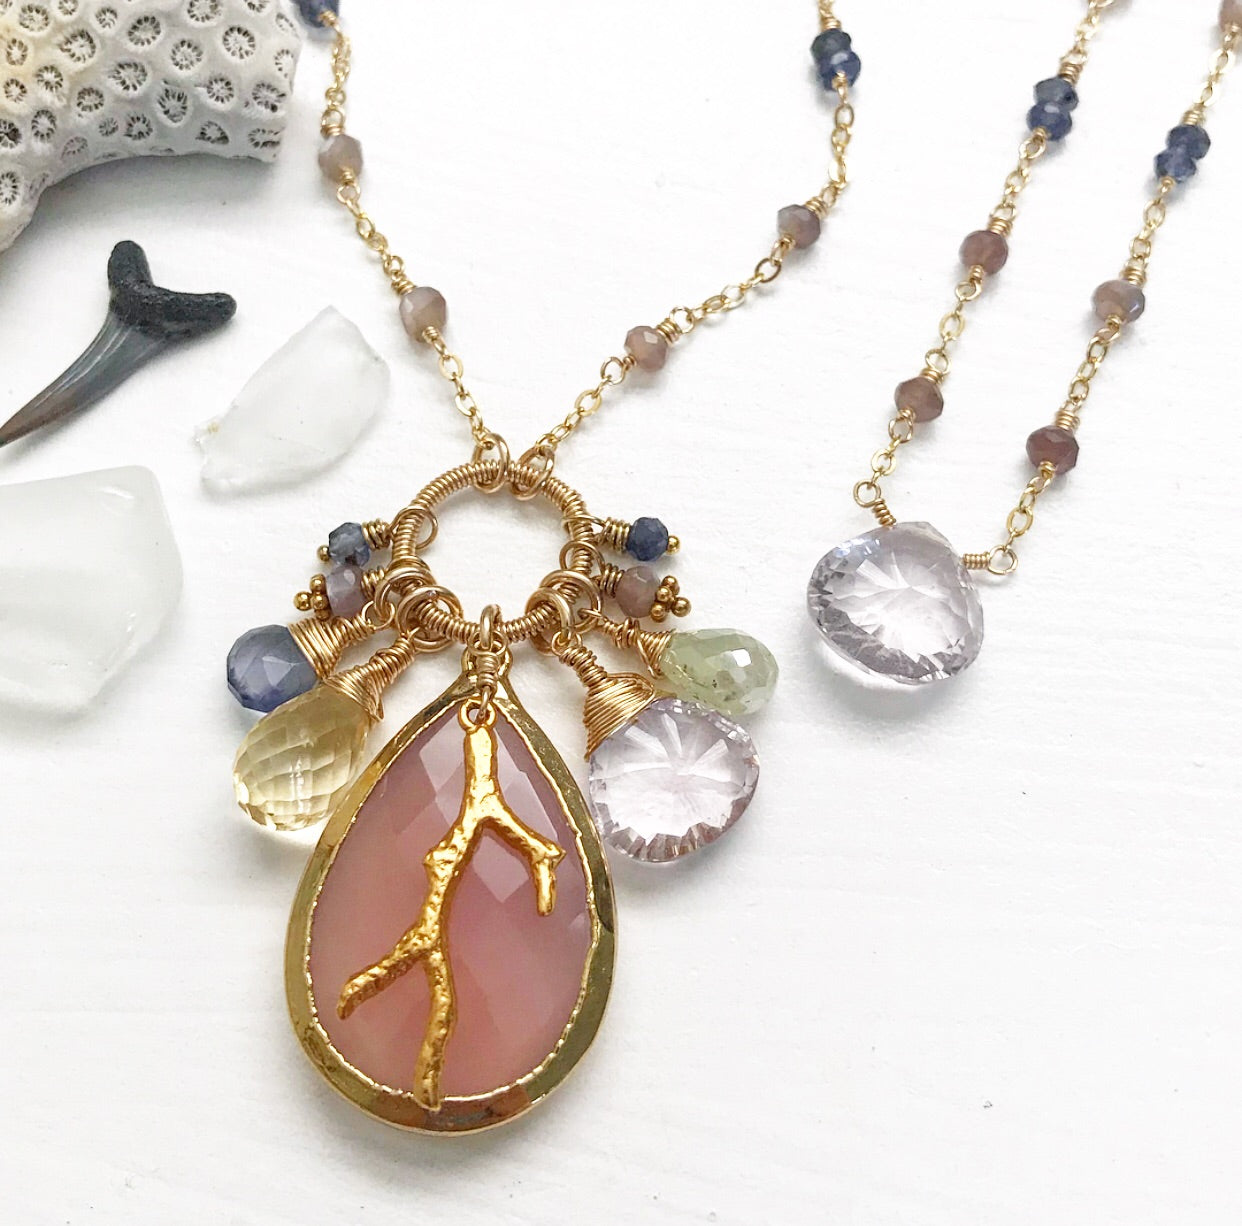 647-One of a Kind Gemstone Drop Necklace